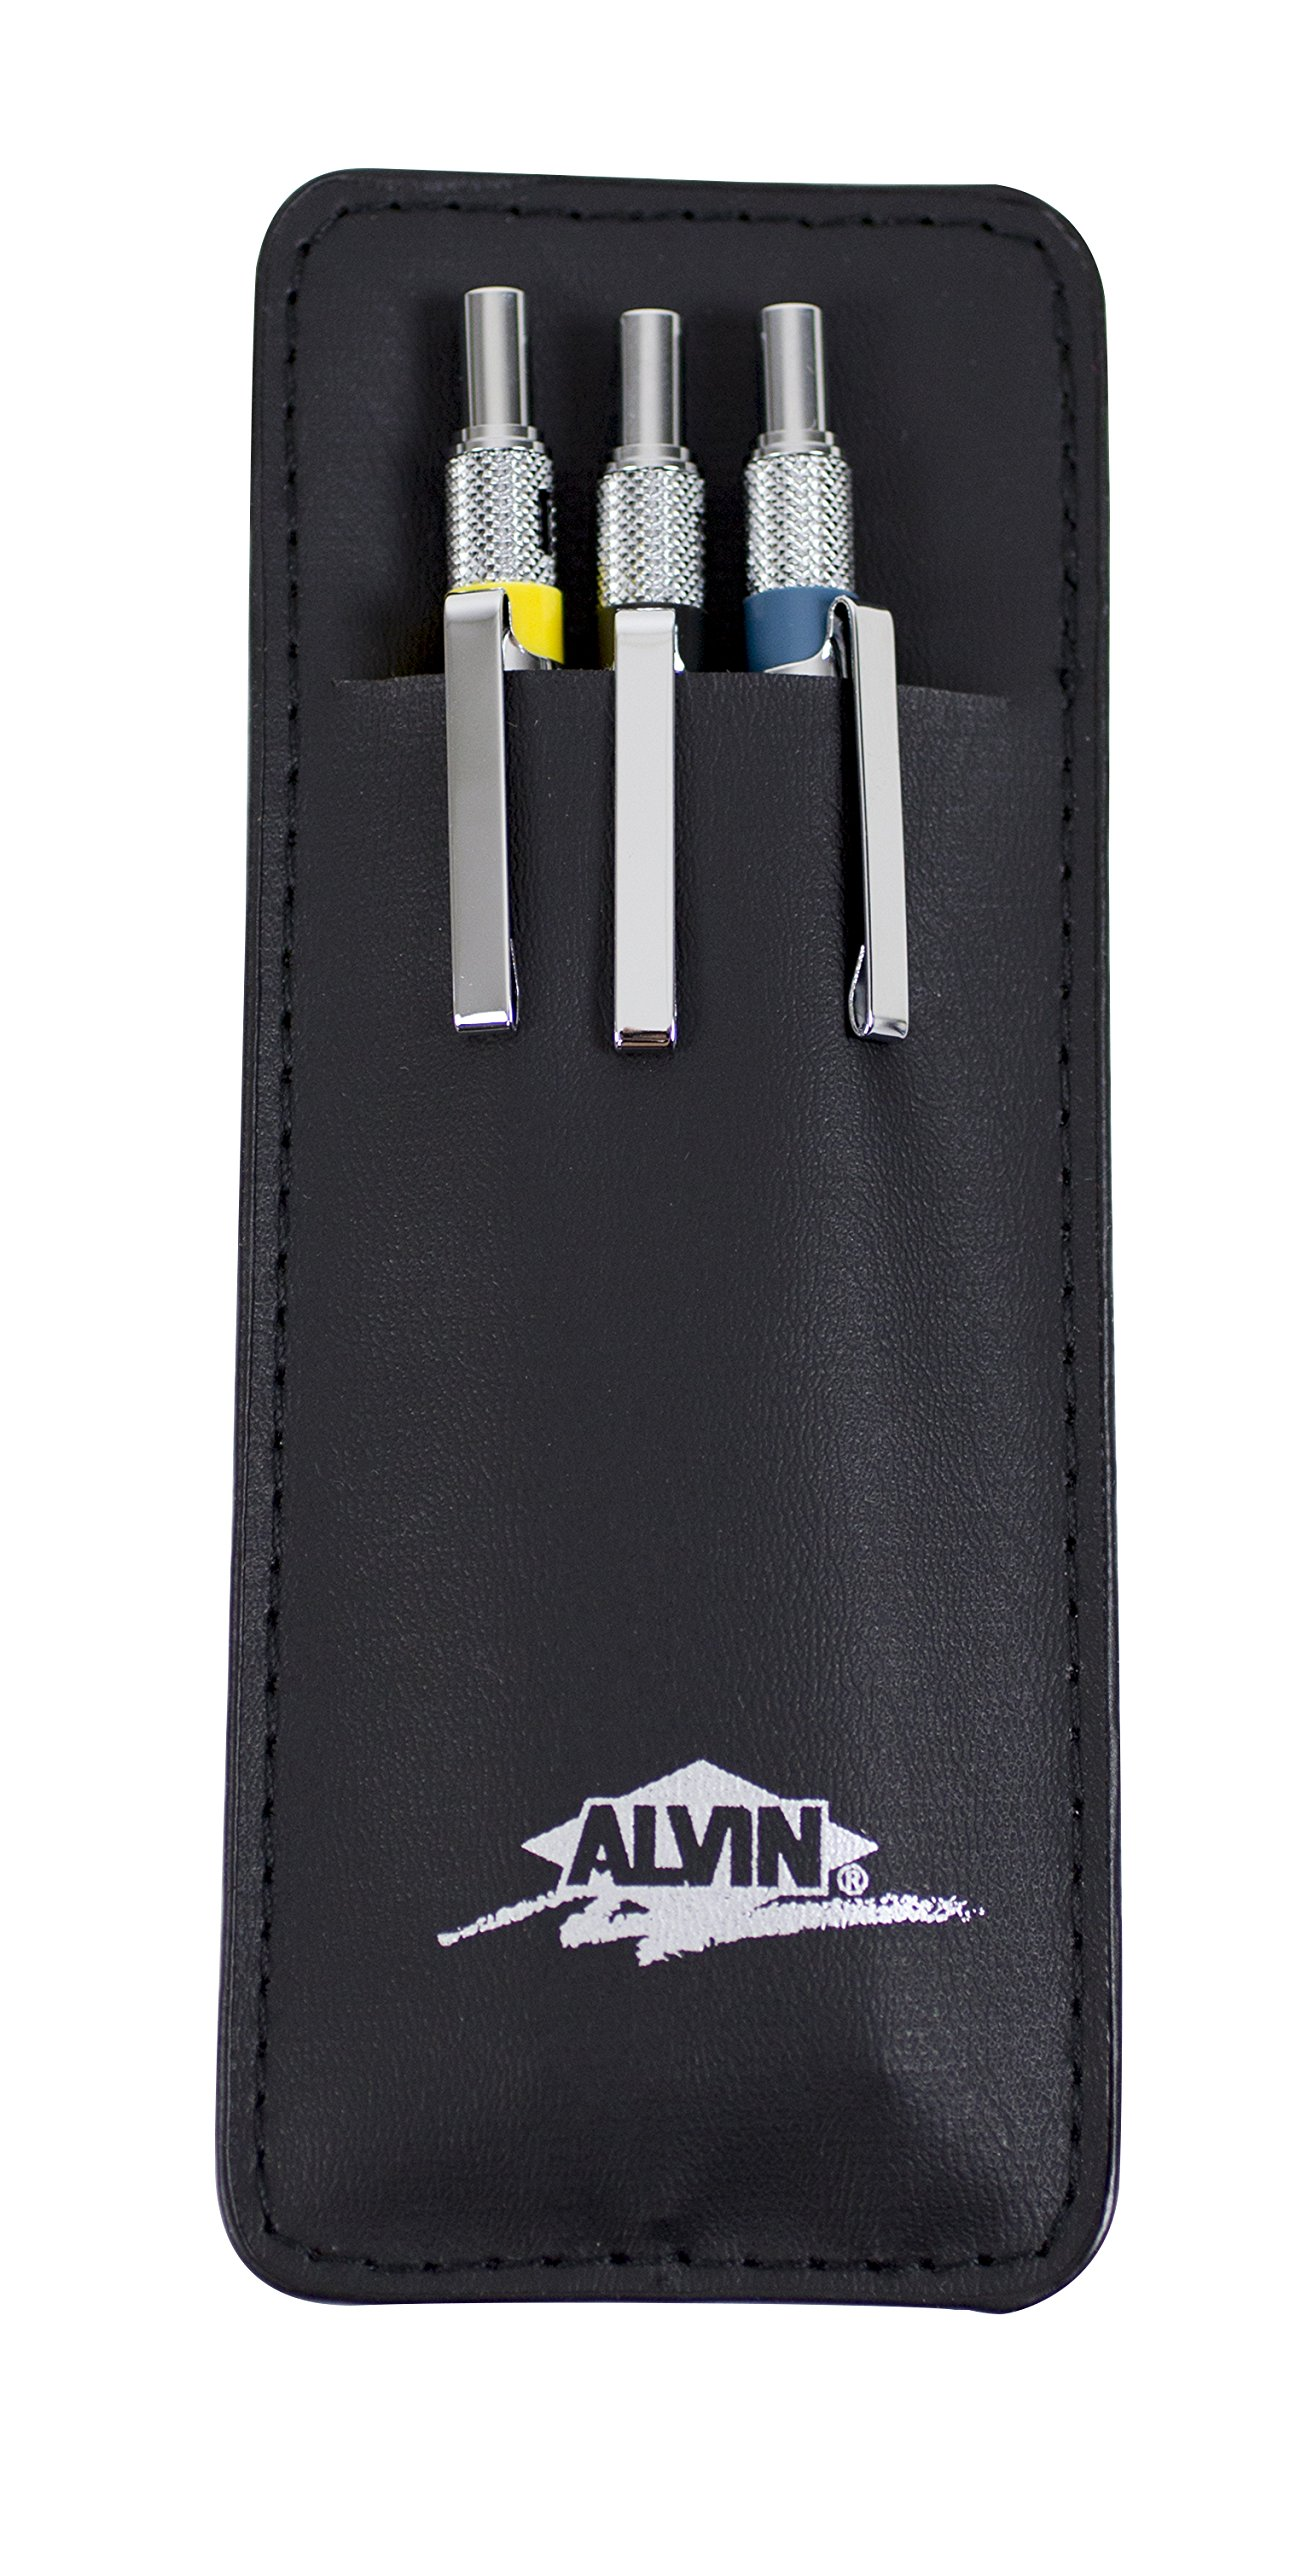 Alvin, Draft-Matic Mechanical Pencil, Set of 3, 0.3mm, 0.5mm and 0.7mm by Alvin